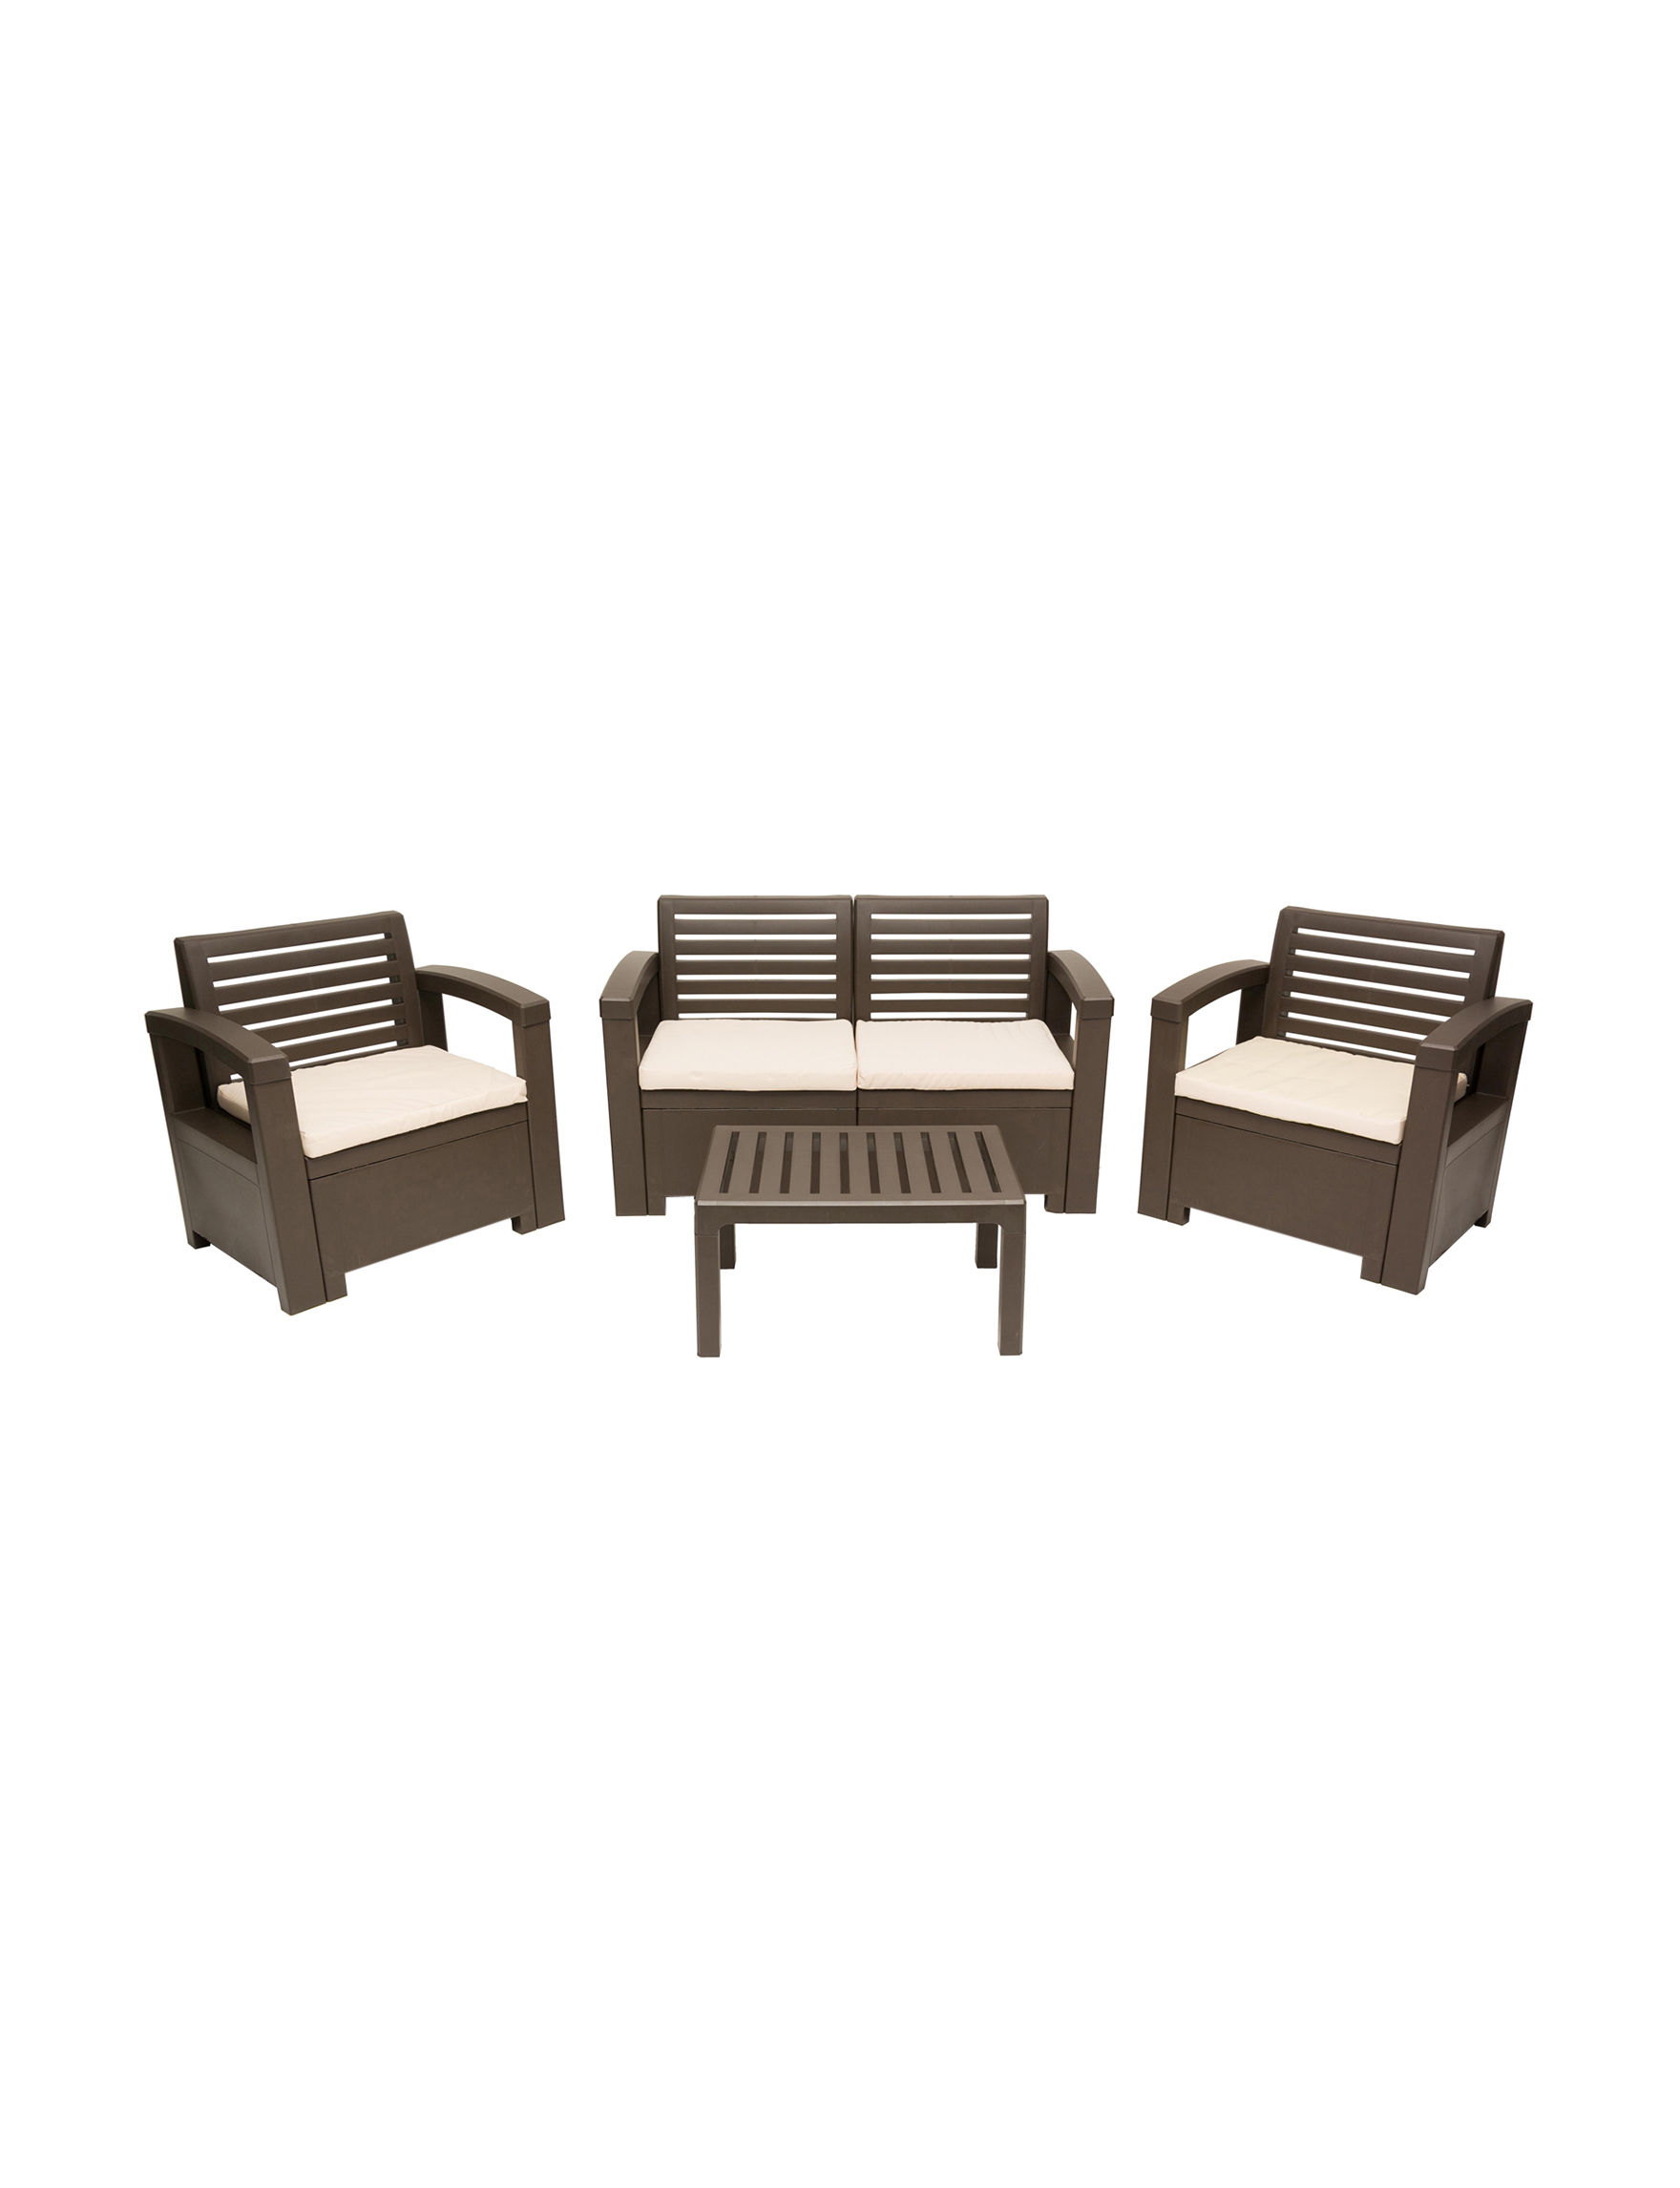 Thy-Hom Brown Patio & Outdoor Furniture